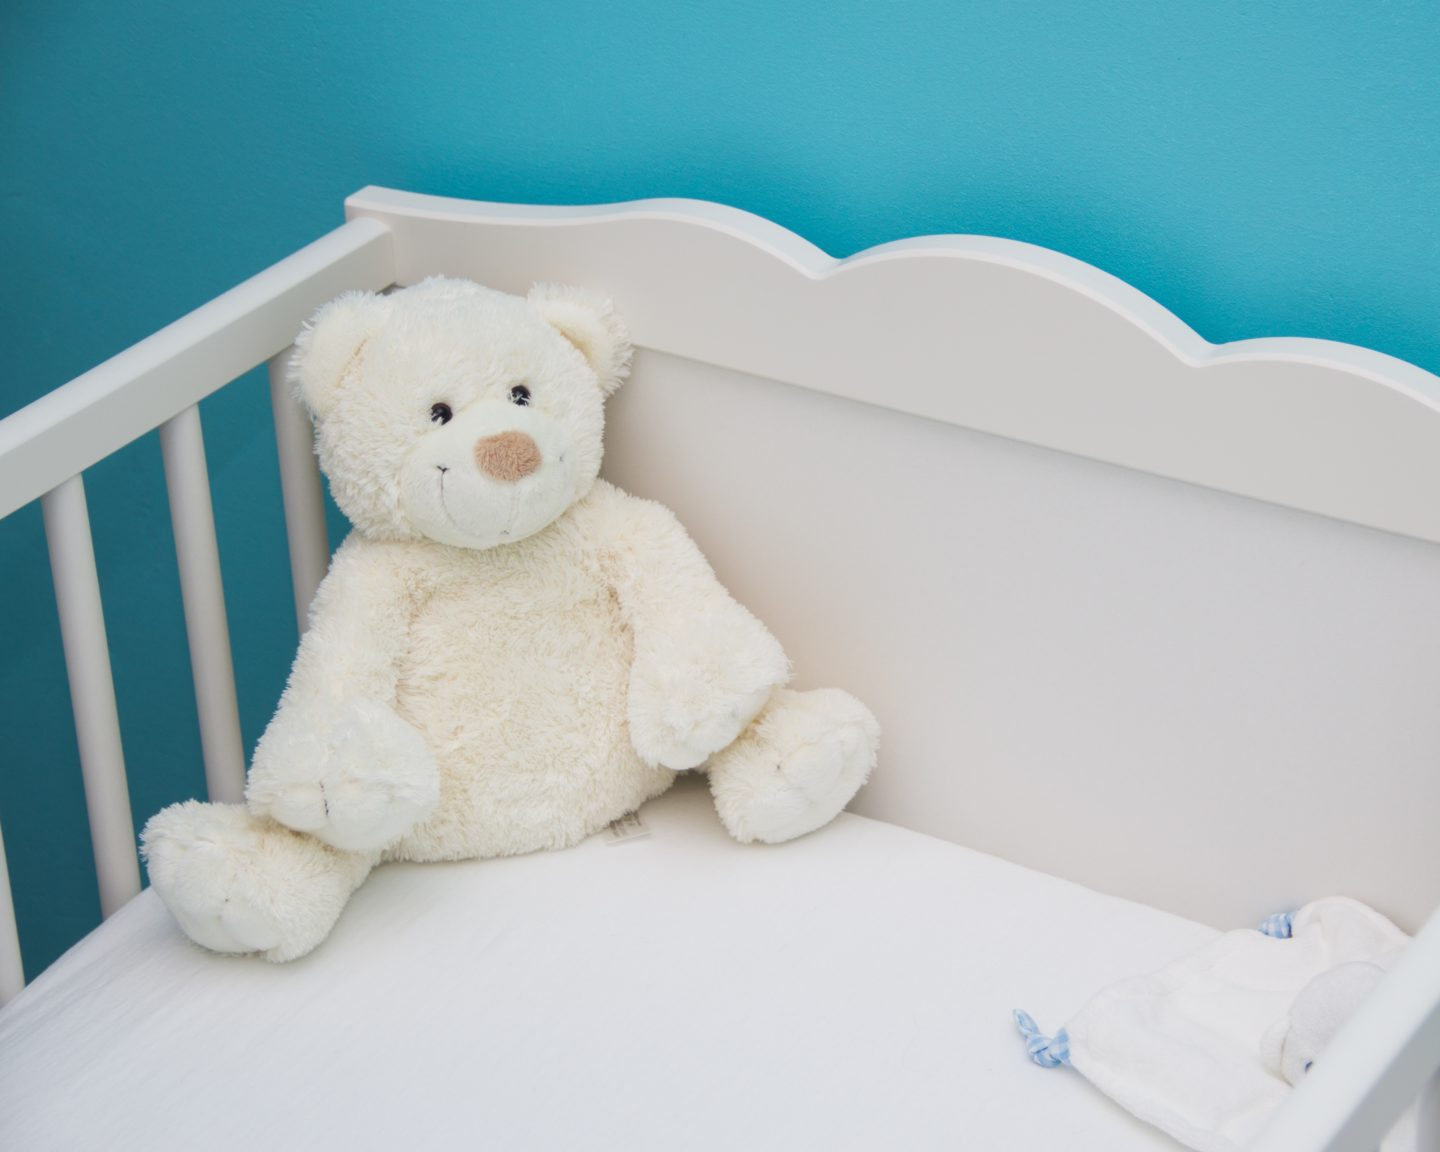 Teddy bear in cot